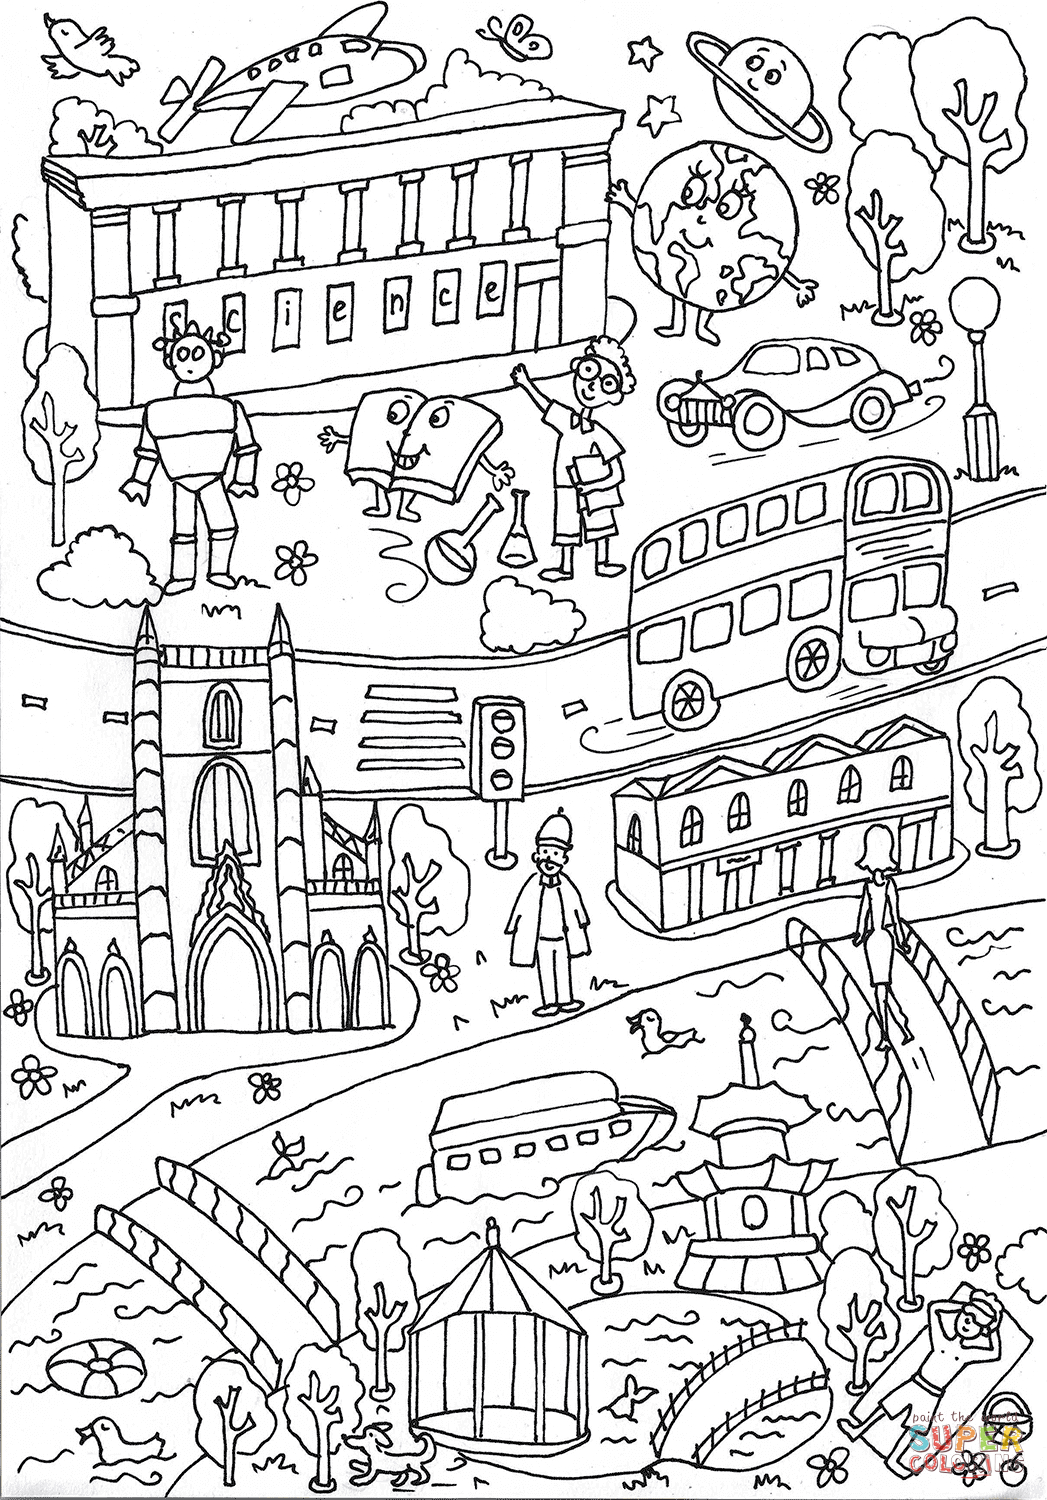 Science Museum And Battersea Park Coloring Page | Free Printable - Free Printable South Park Coloring Pages